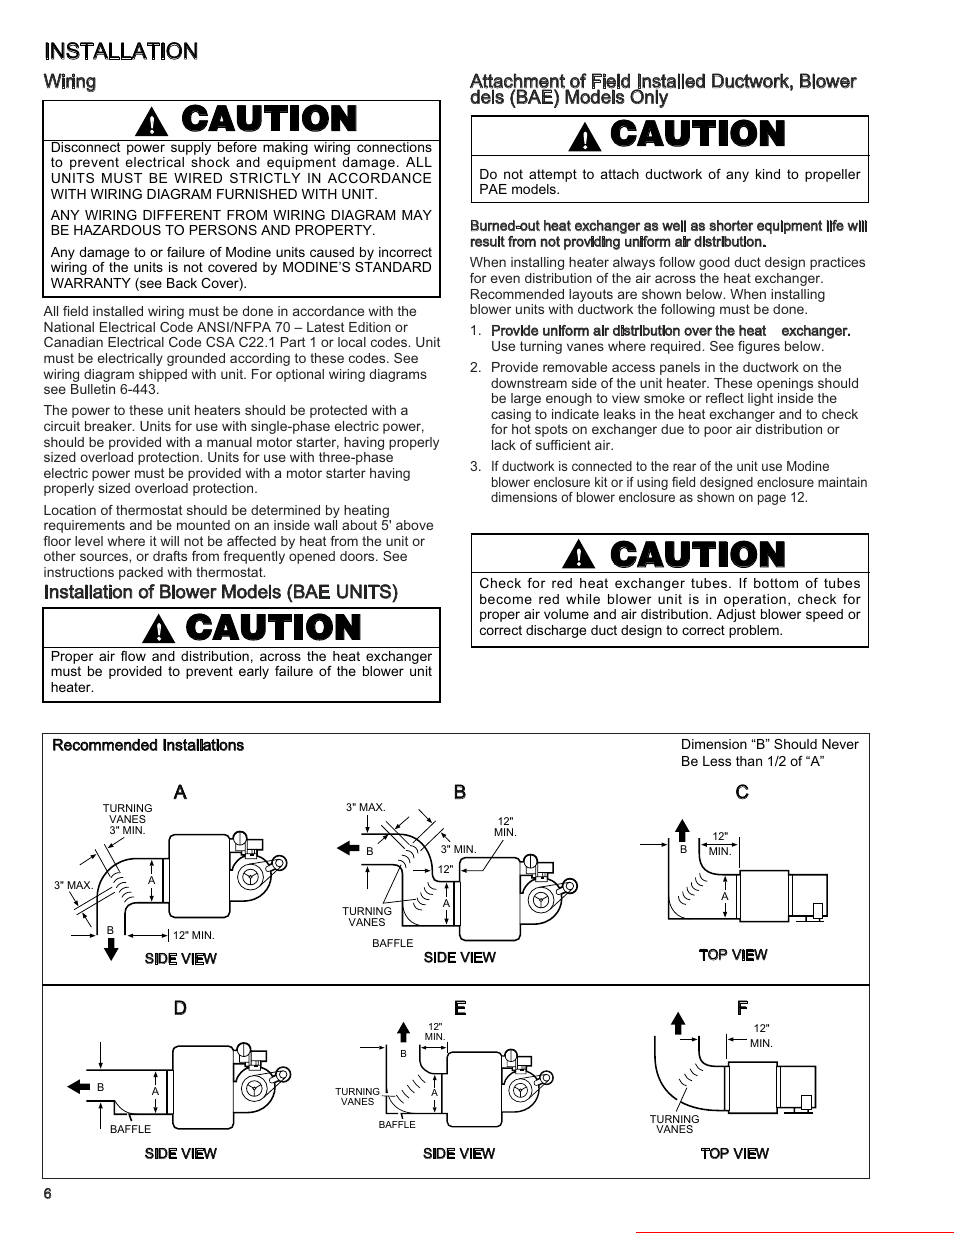 Modine Pdp Wiring Diagram 25 Images Heaters For Pd Manufacturing Bae Page6resize6652c861 50